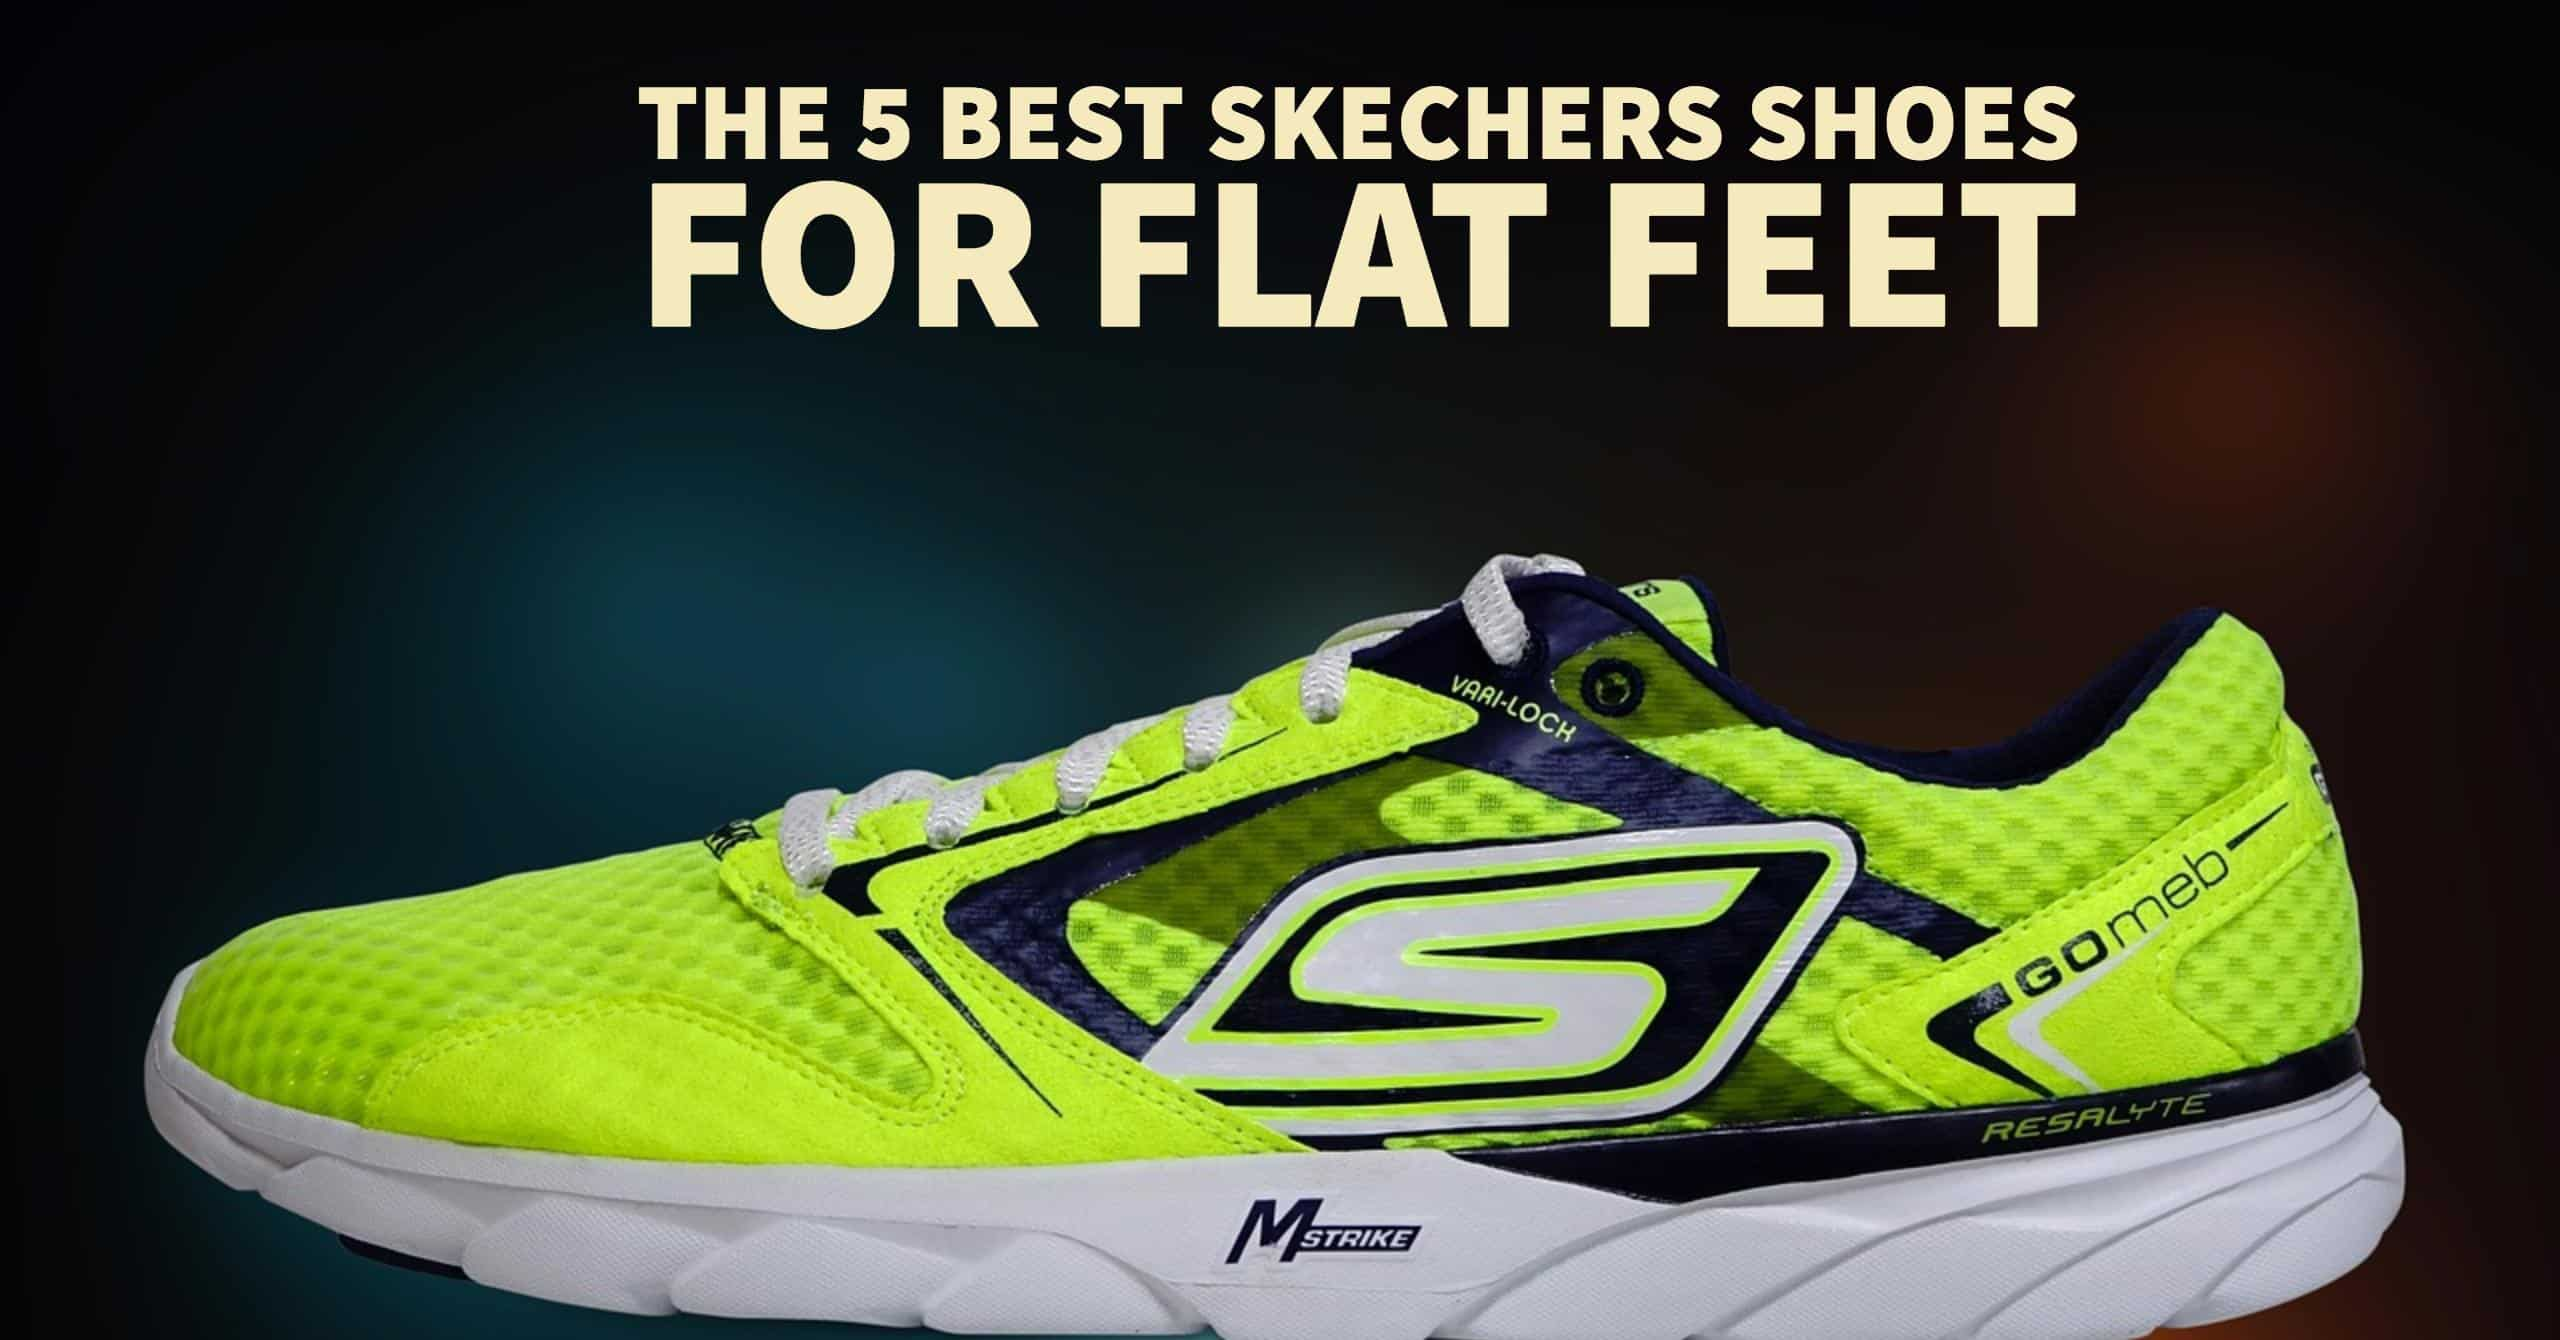 Skechers have quickly ascended to the conversation of good running shoes. Here are the 5 best skecher shoes for flat feet.